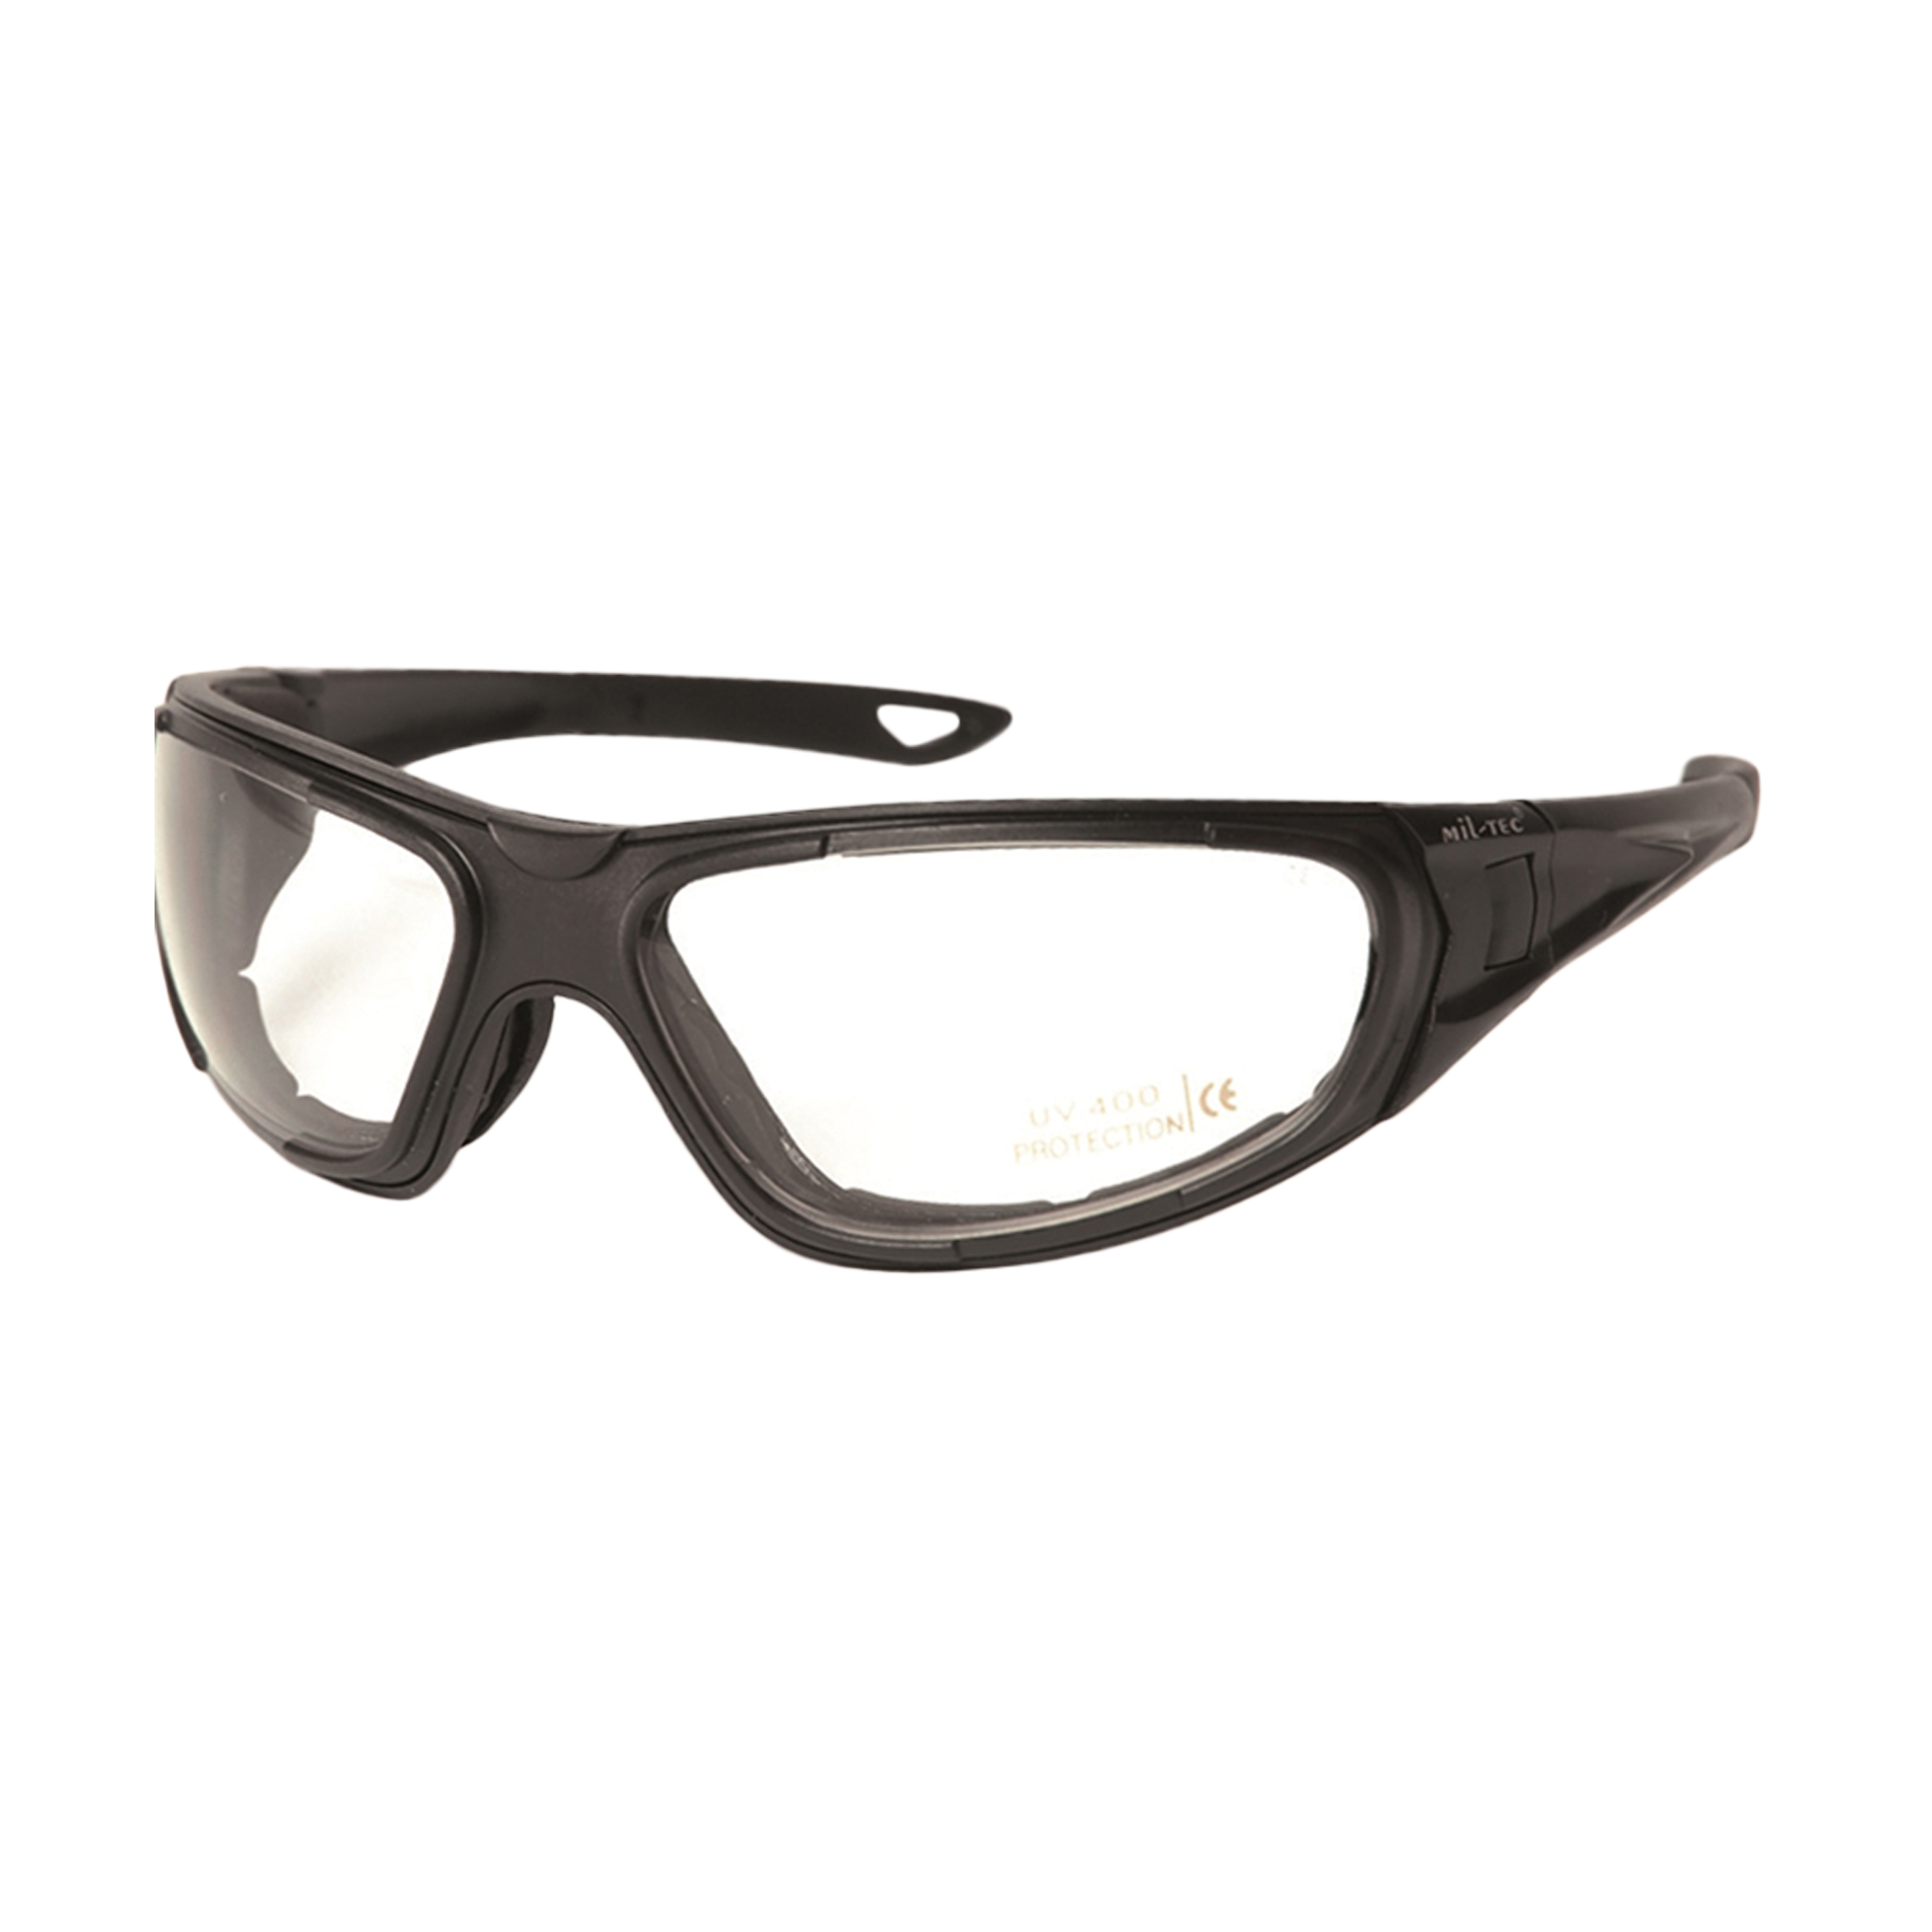 Brille Tactical Goggle 3in1 schwarz